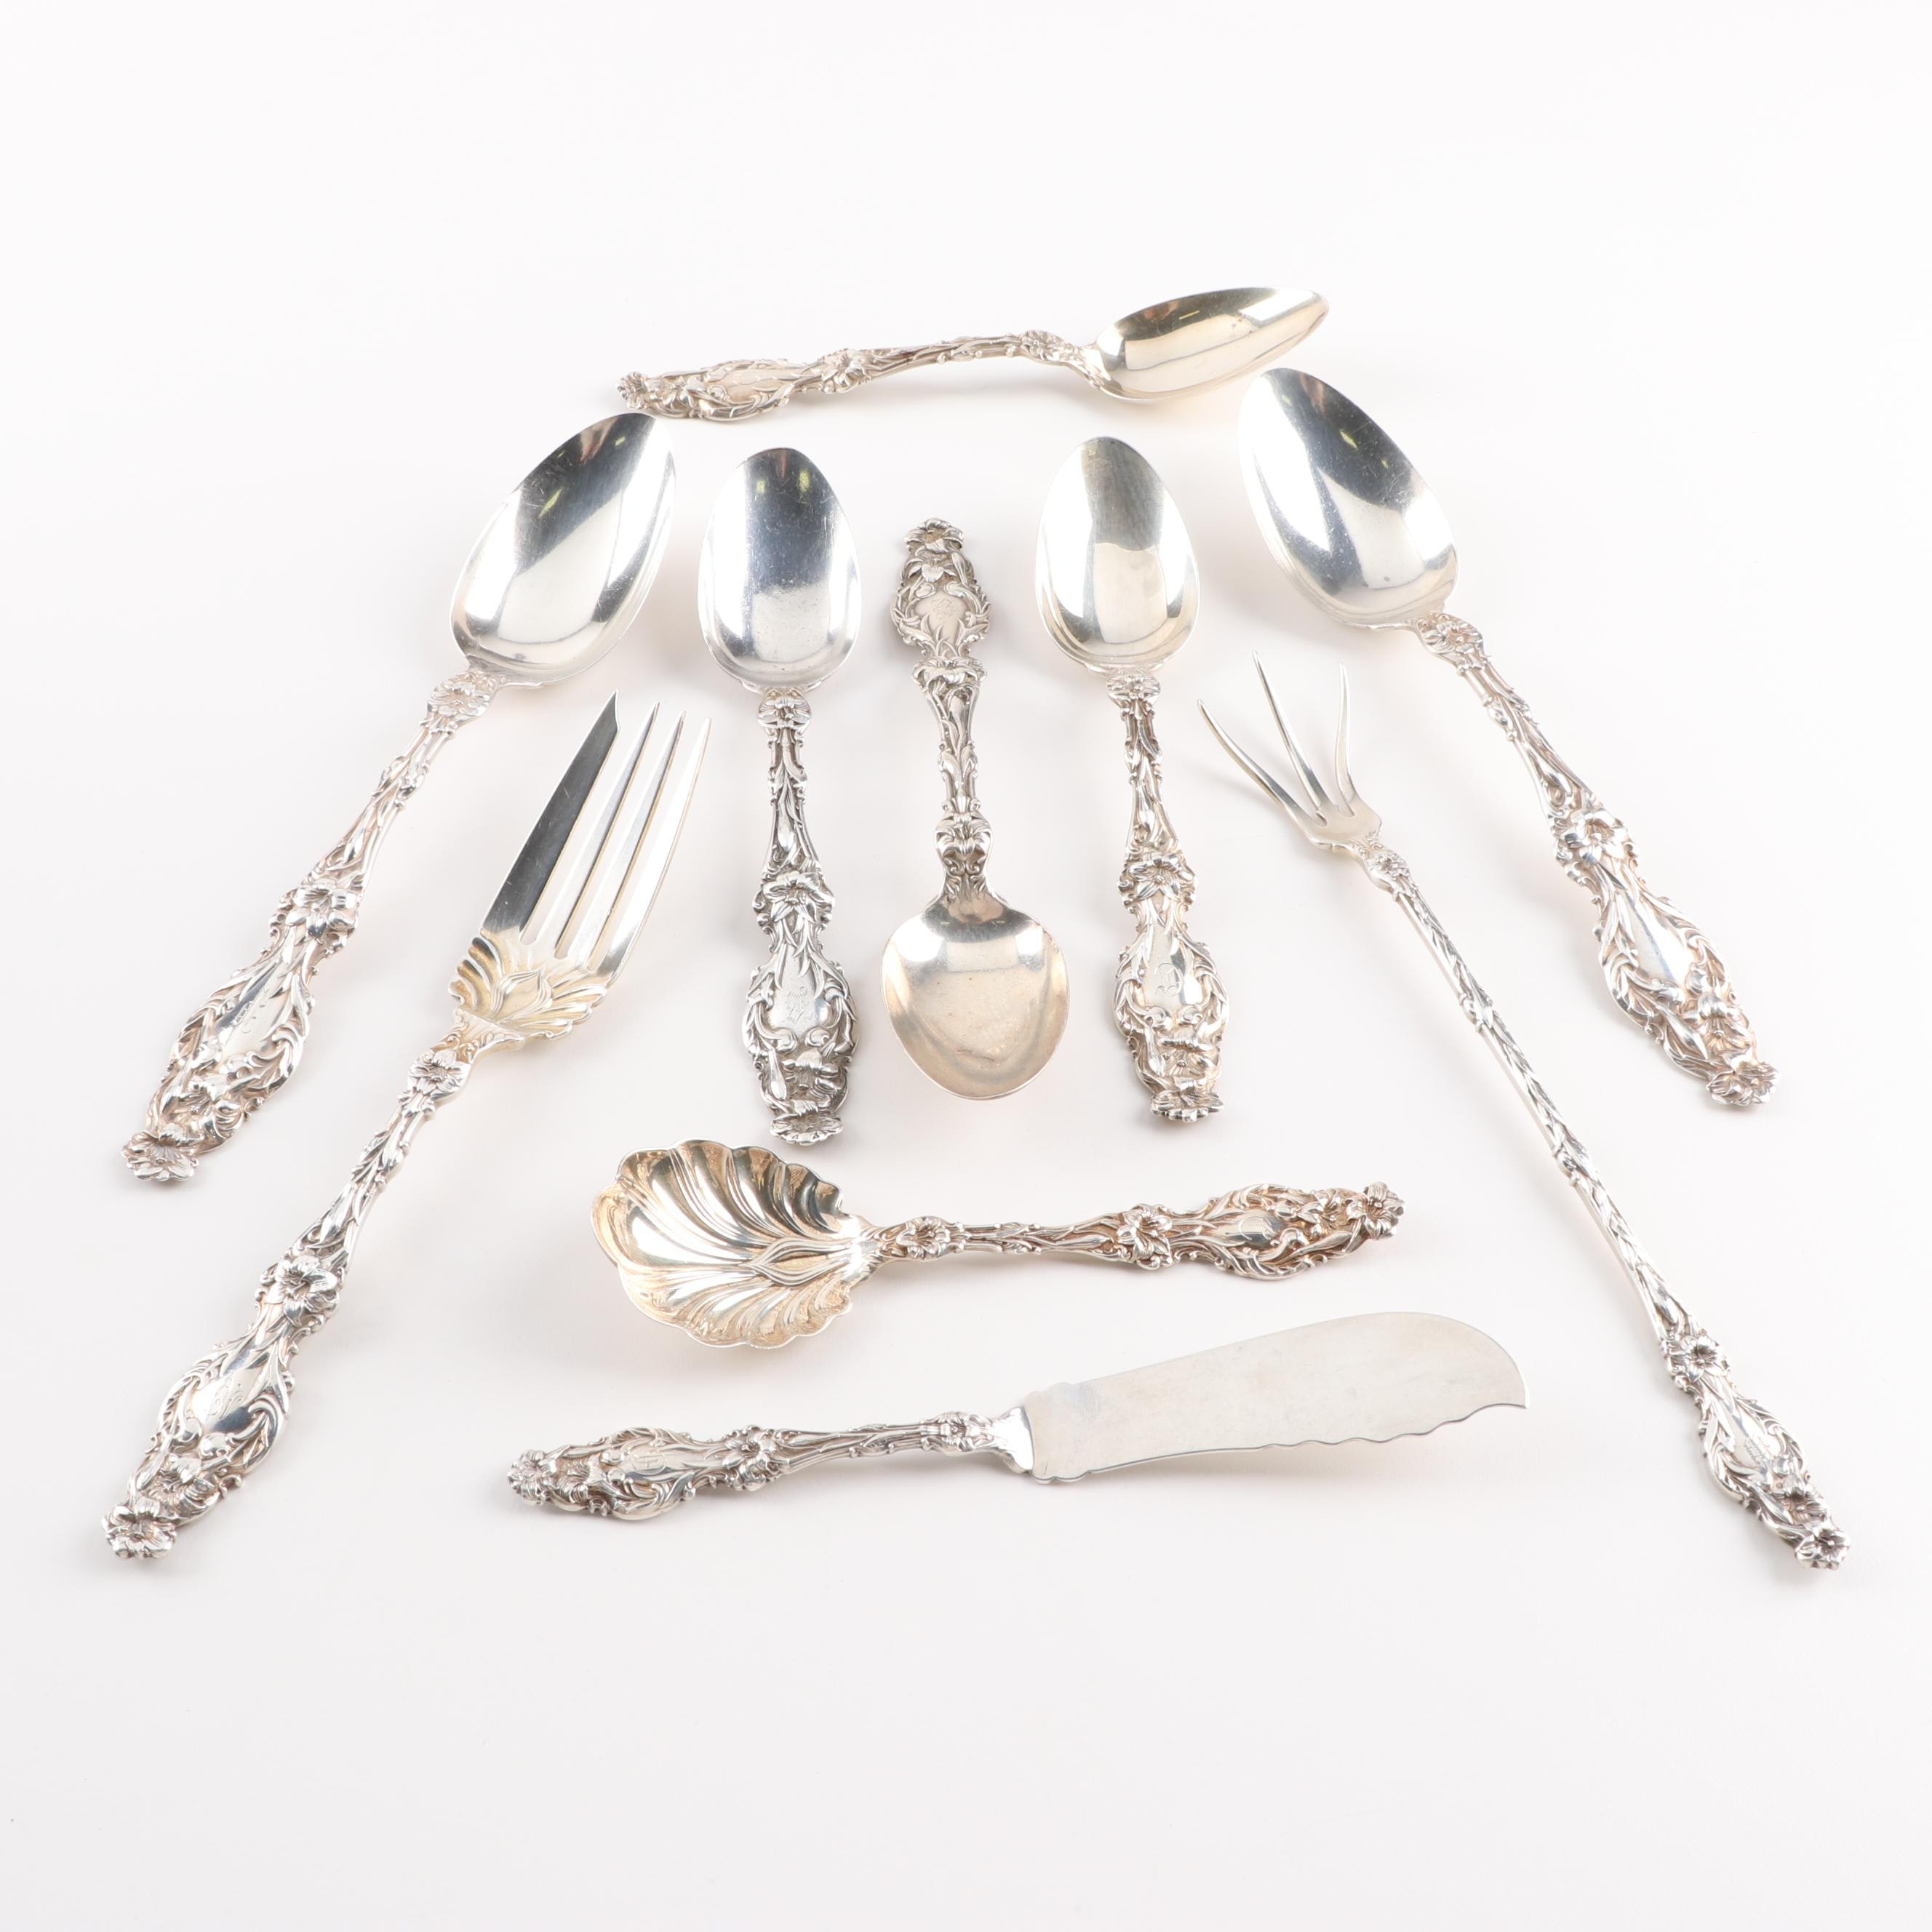 """Whiting Division """"Lily"""" Sterling Silver Flatware and Serving Utensils, American"""